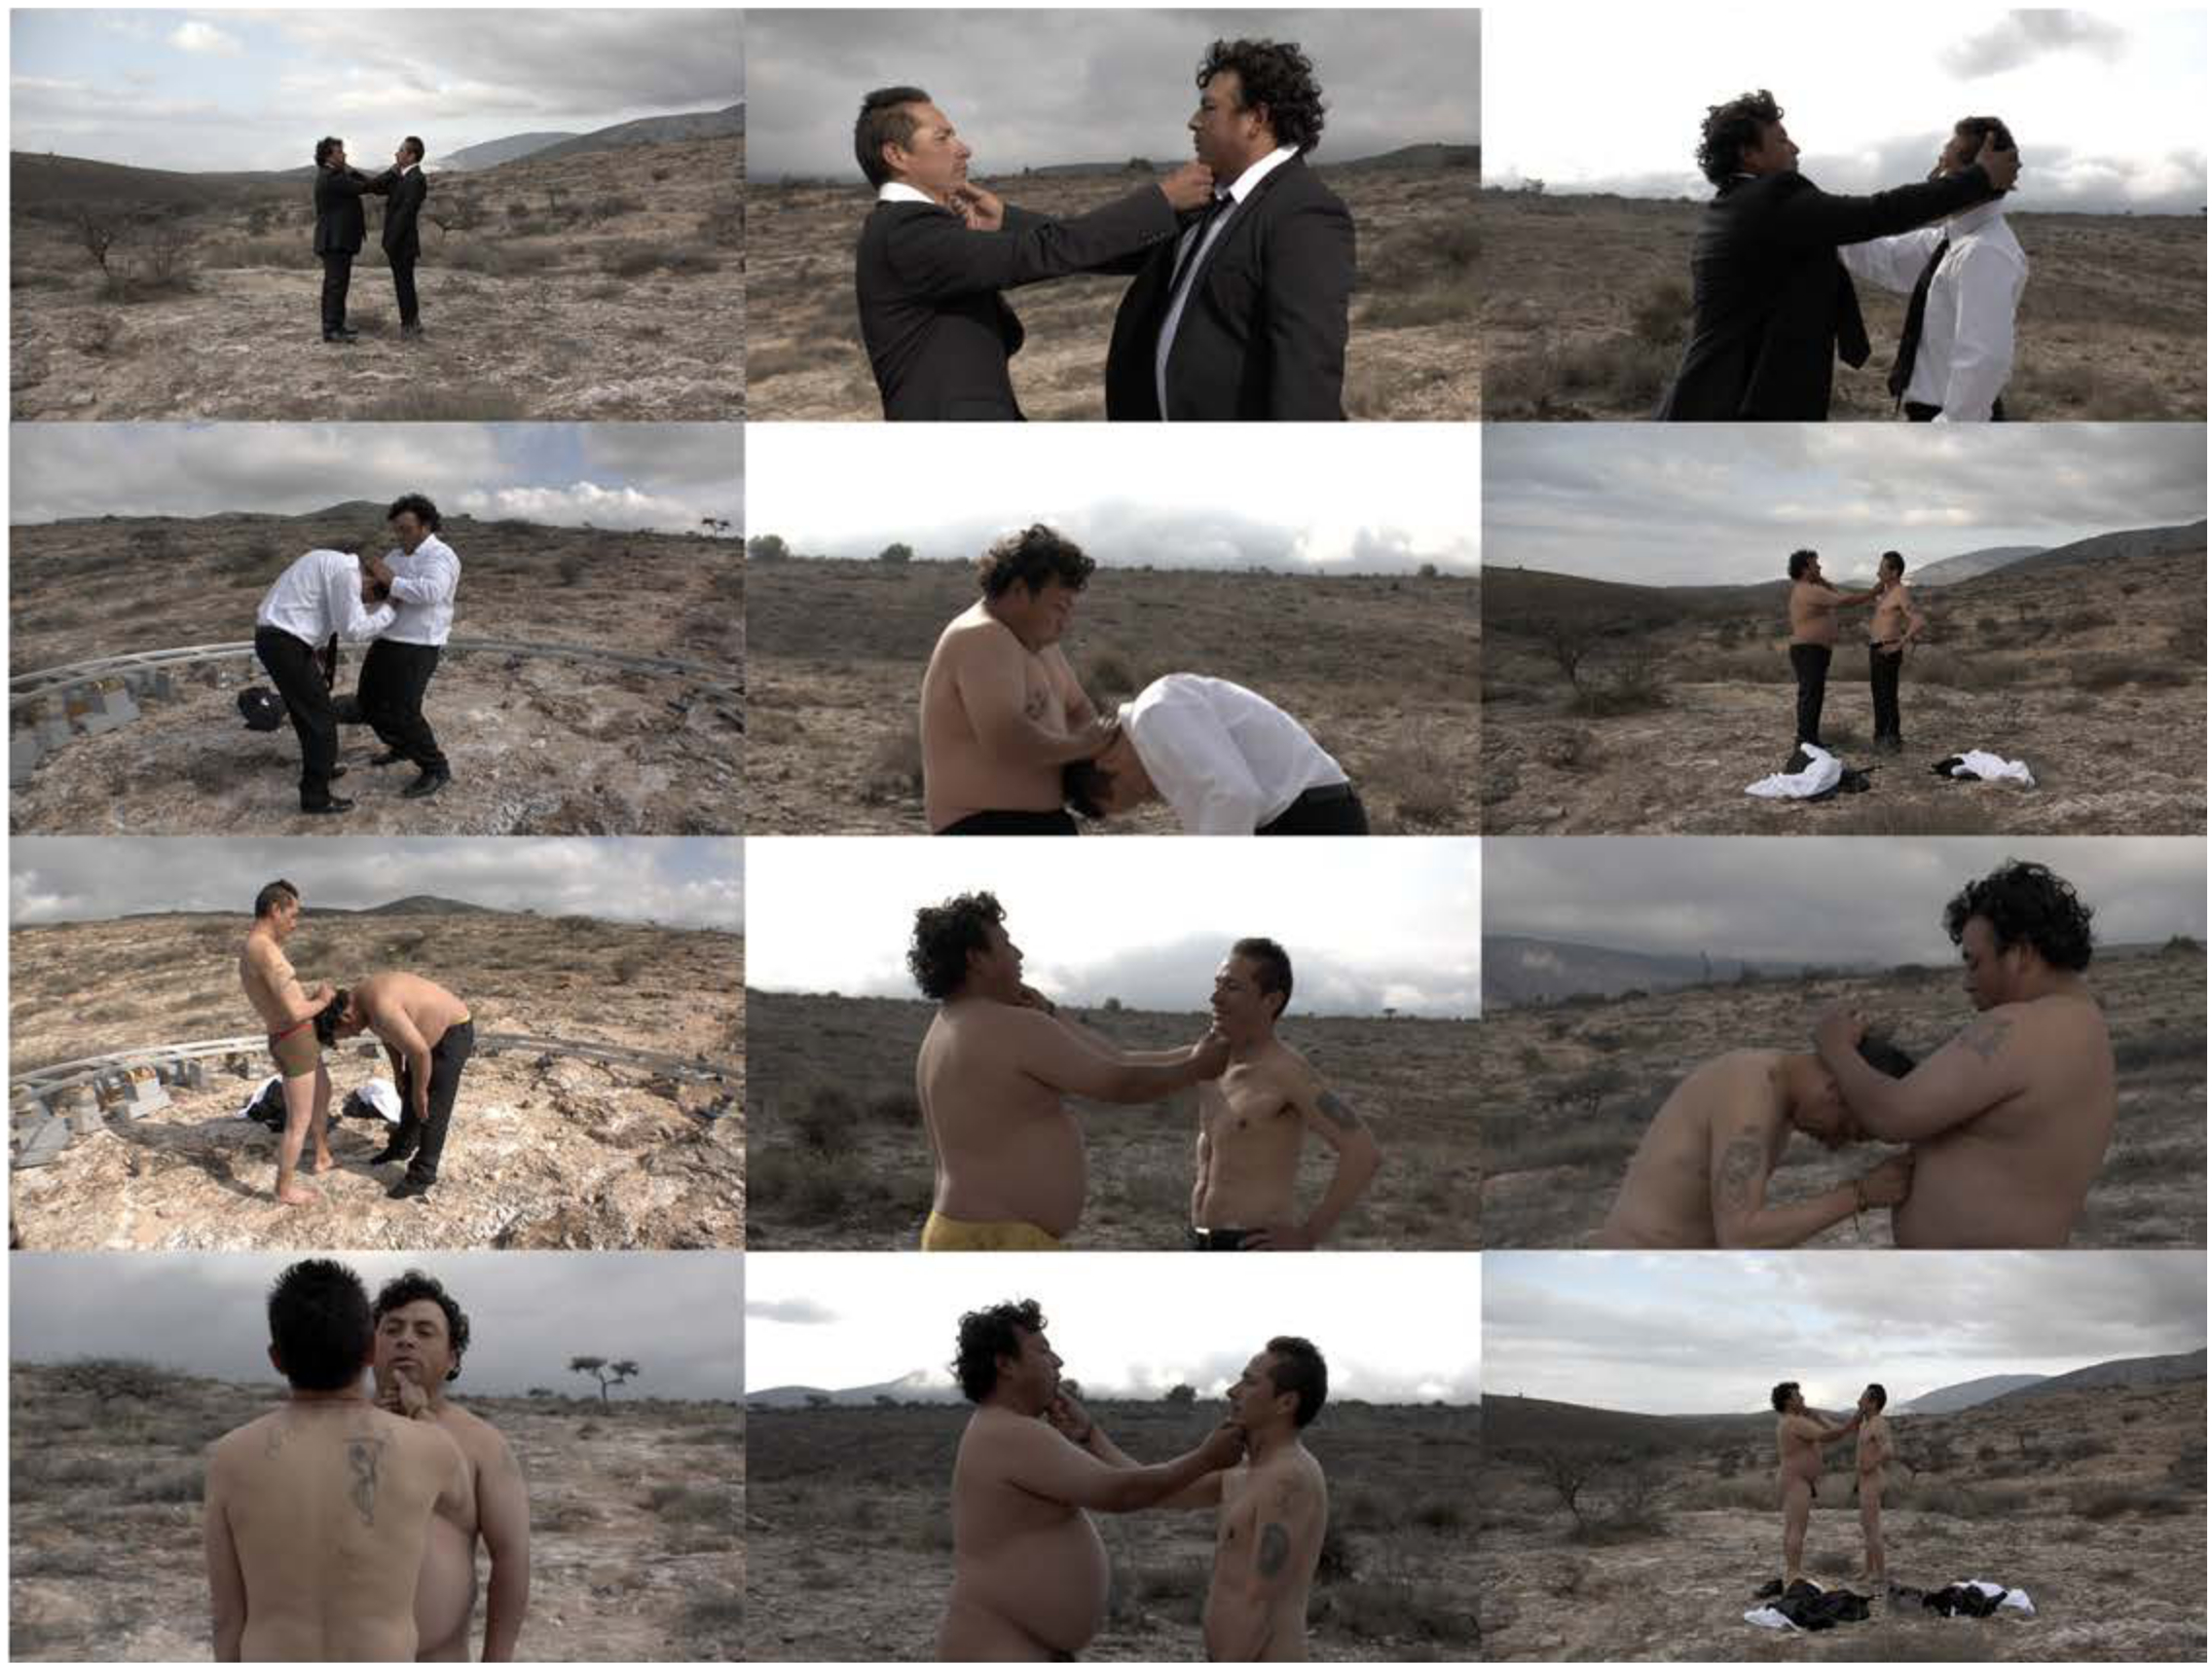 El primero que ría (The first one to laugh), 2012, Video